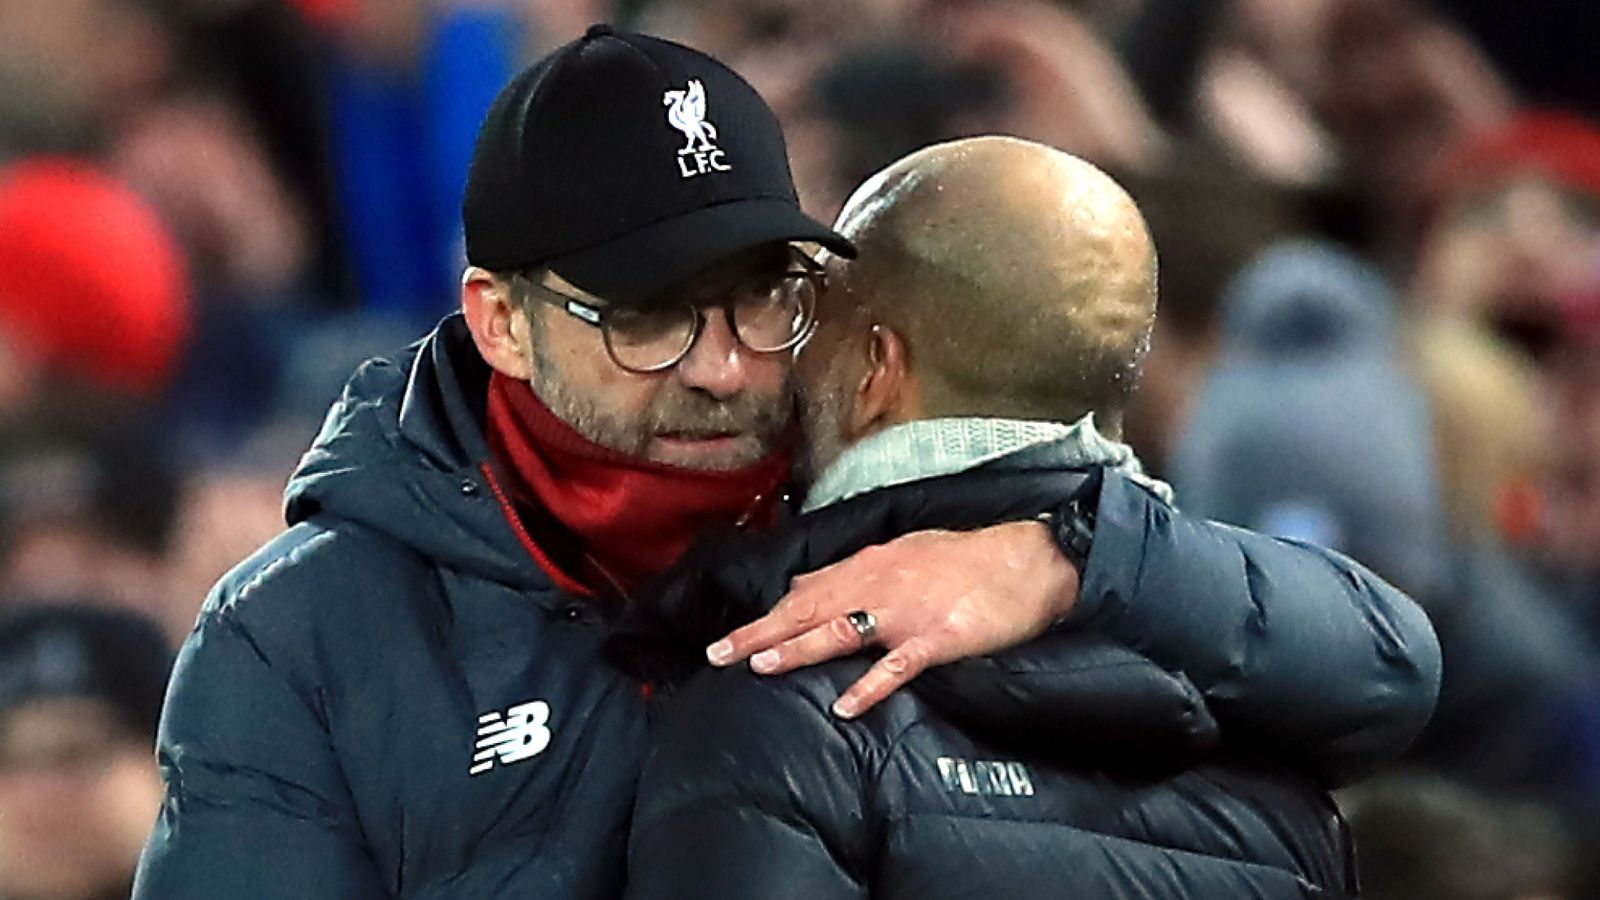 Klopp Offers Sympathy To Guardiola, Man City After UEFA Ban